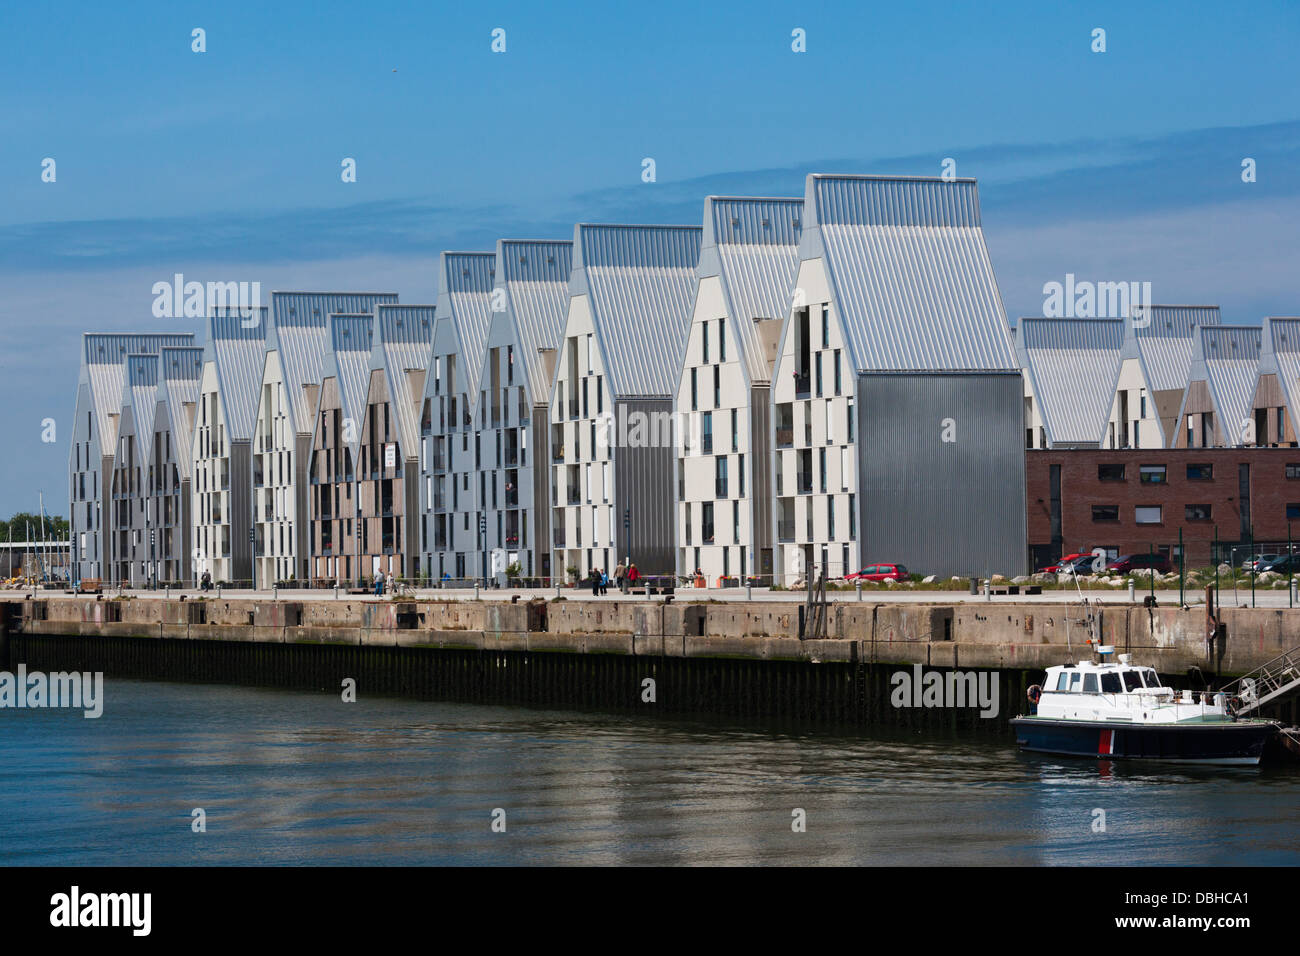 France nord french flanders dunkerque port view with modern stock photo 58775193 alamy - Dunkirk port france address ...